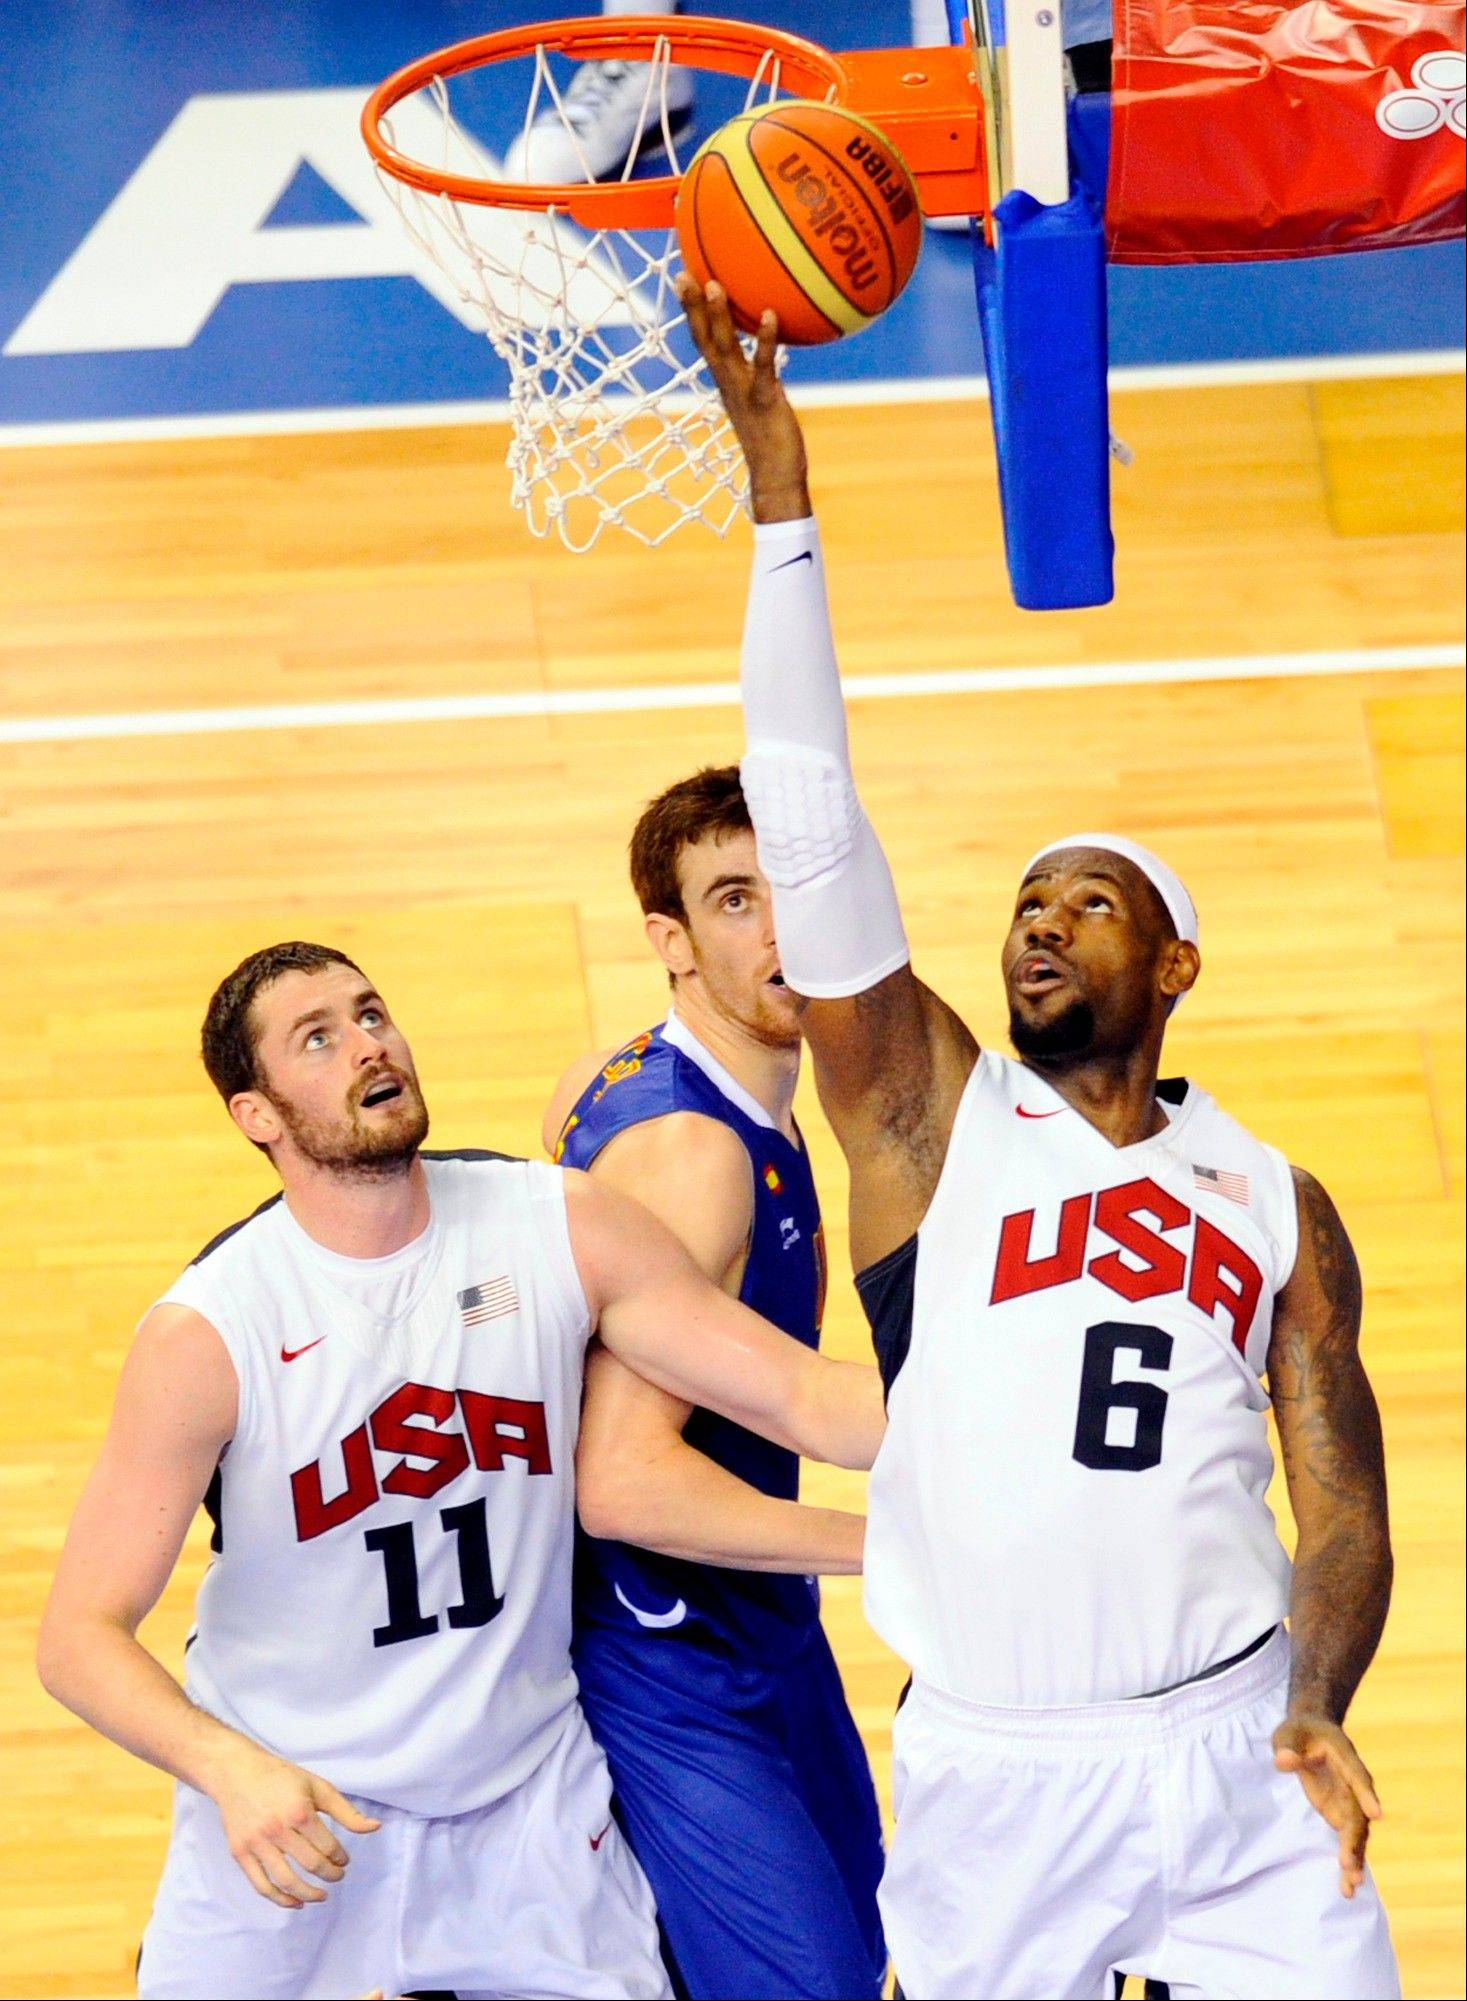 LeBron James, right, dives for the ball against Victor Claver, center, of Spain Men�s Senior National Team Tuesday during an exhibition match in Barcelona, Spain.